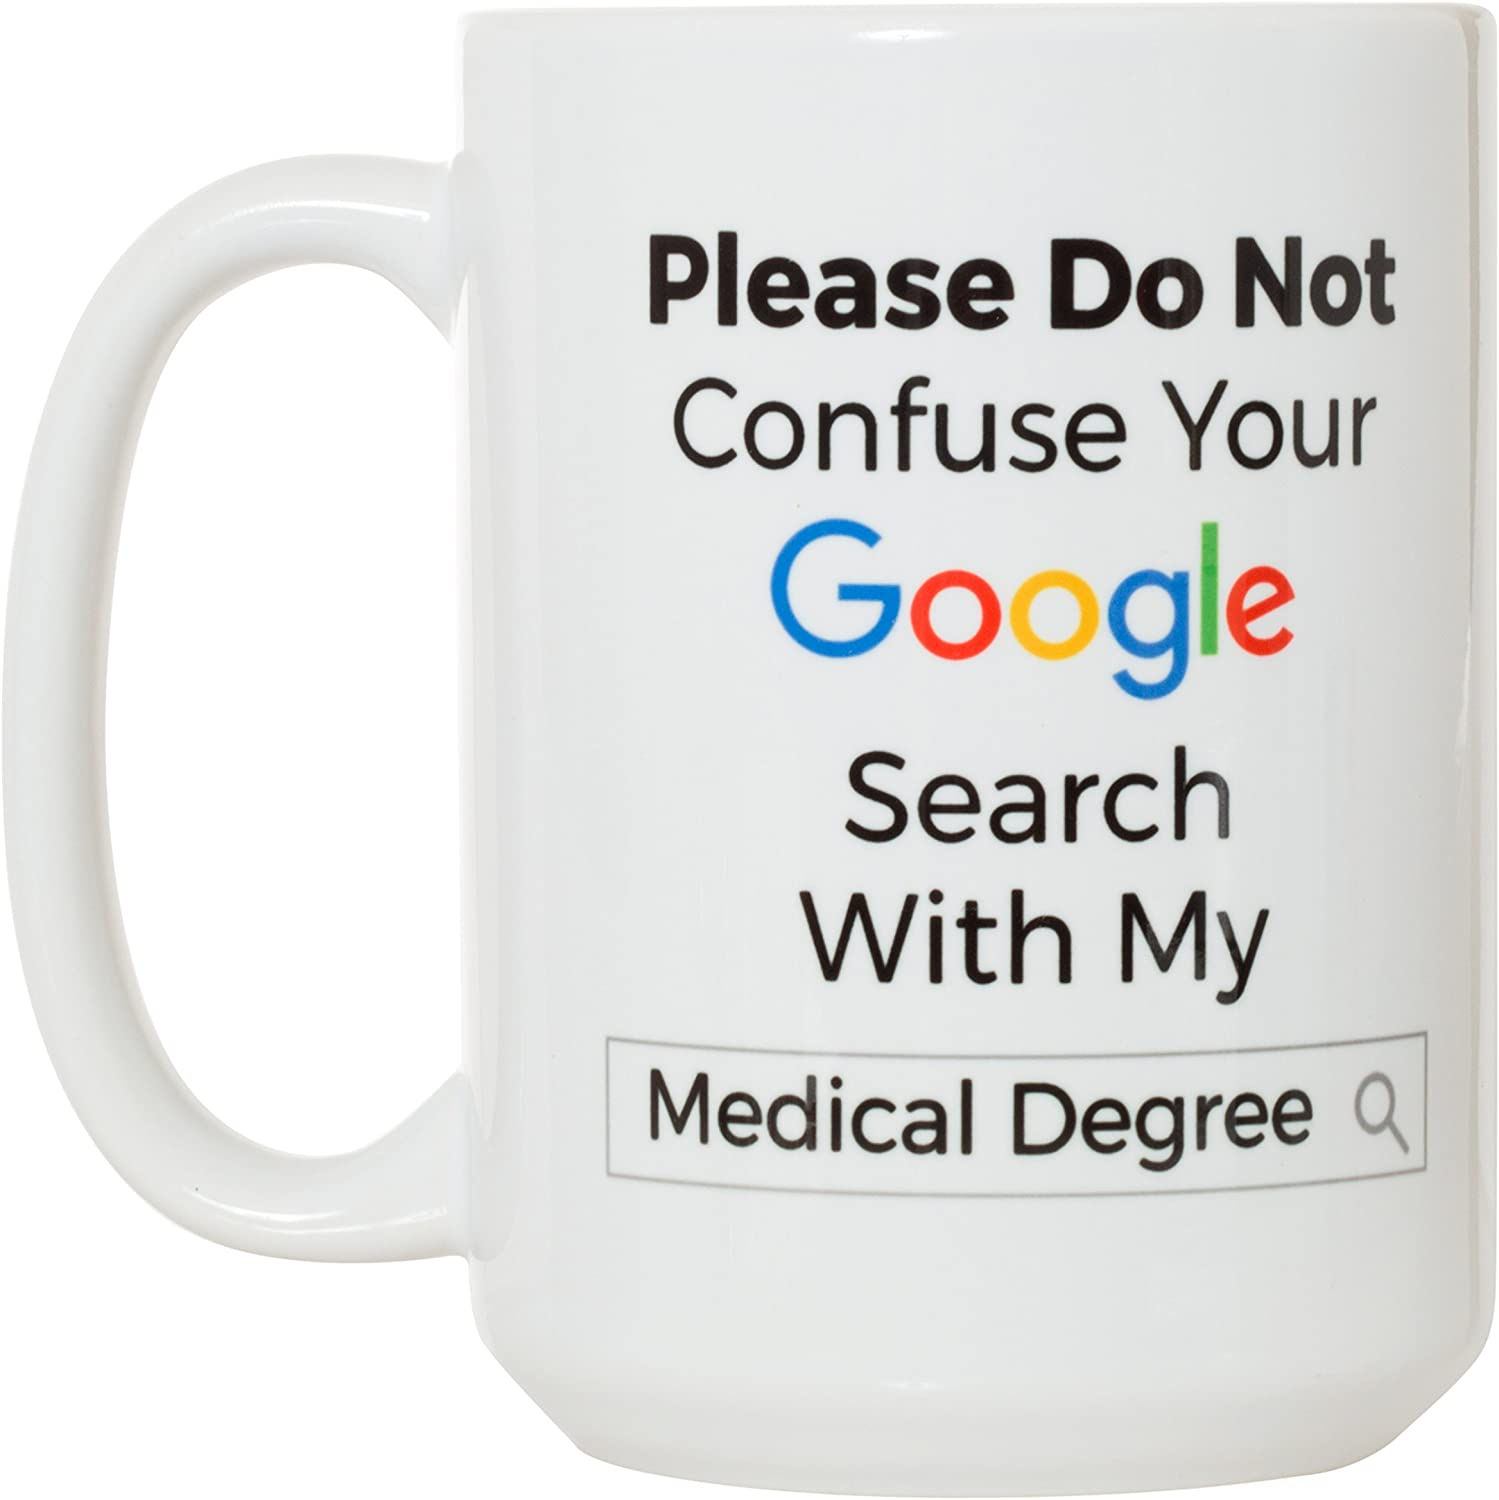 Please Don't Confuse Your Google Search With My Medical Degree - Great Doctor DR Gift Mug - 15oz Deluxe Double-Sided Coffee Tea Mug